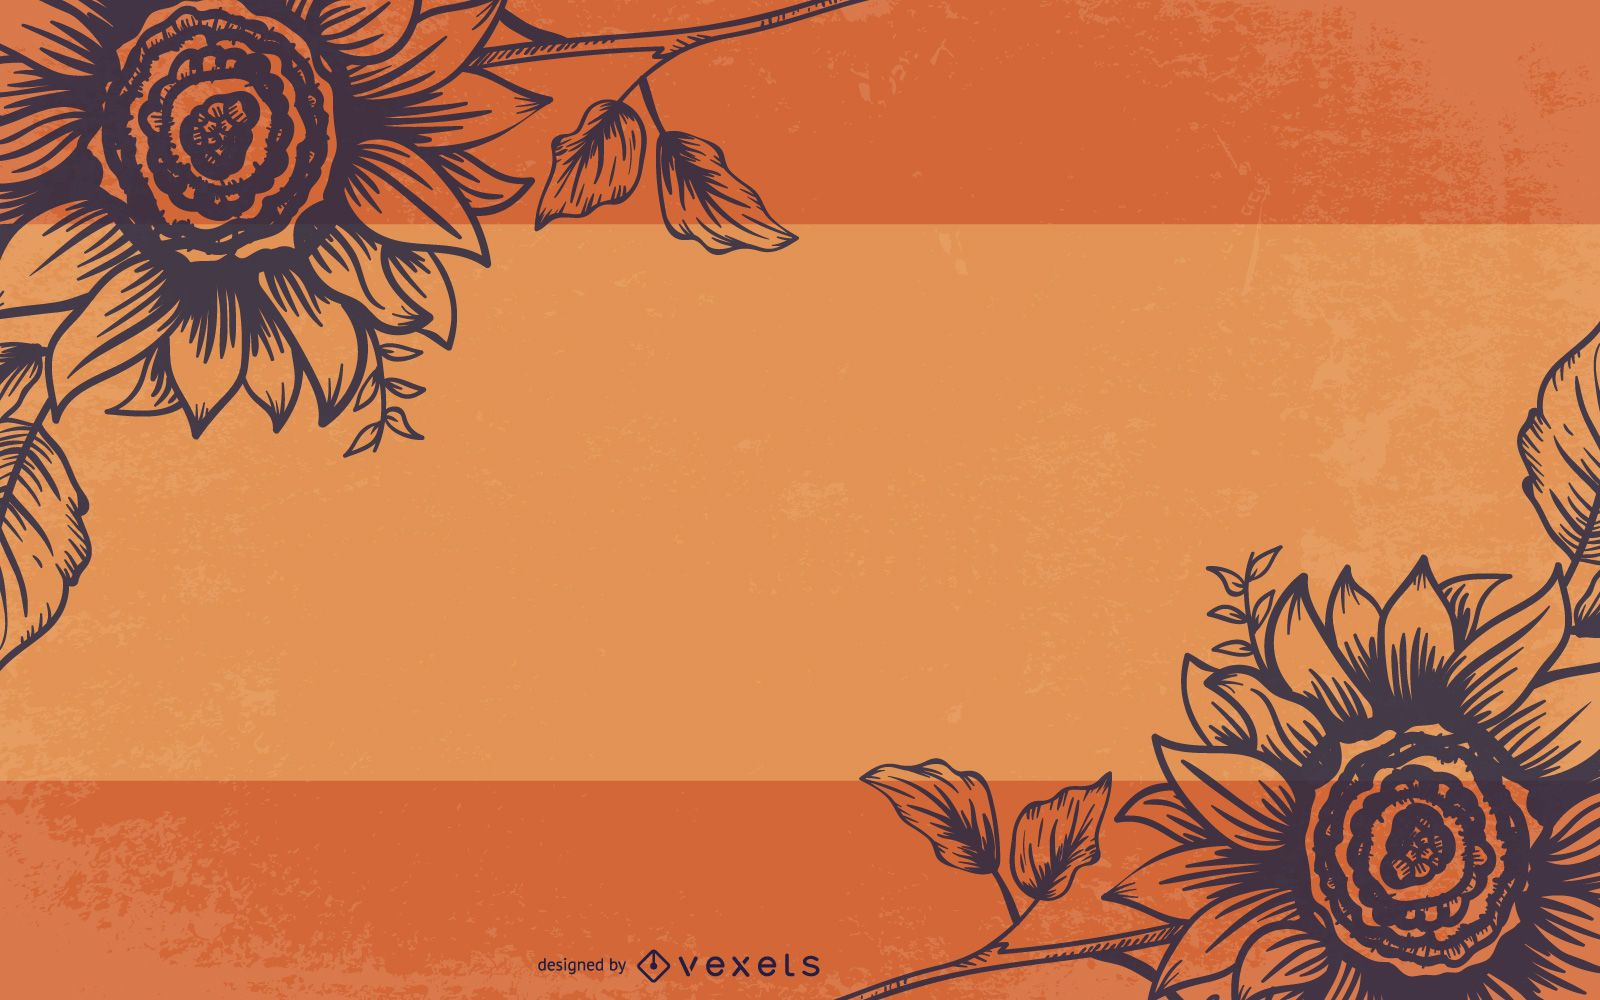 Floral Grungy Hand Drawn Background